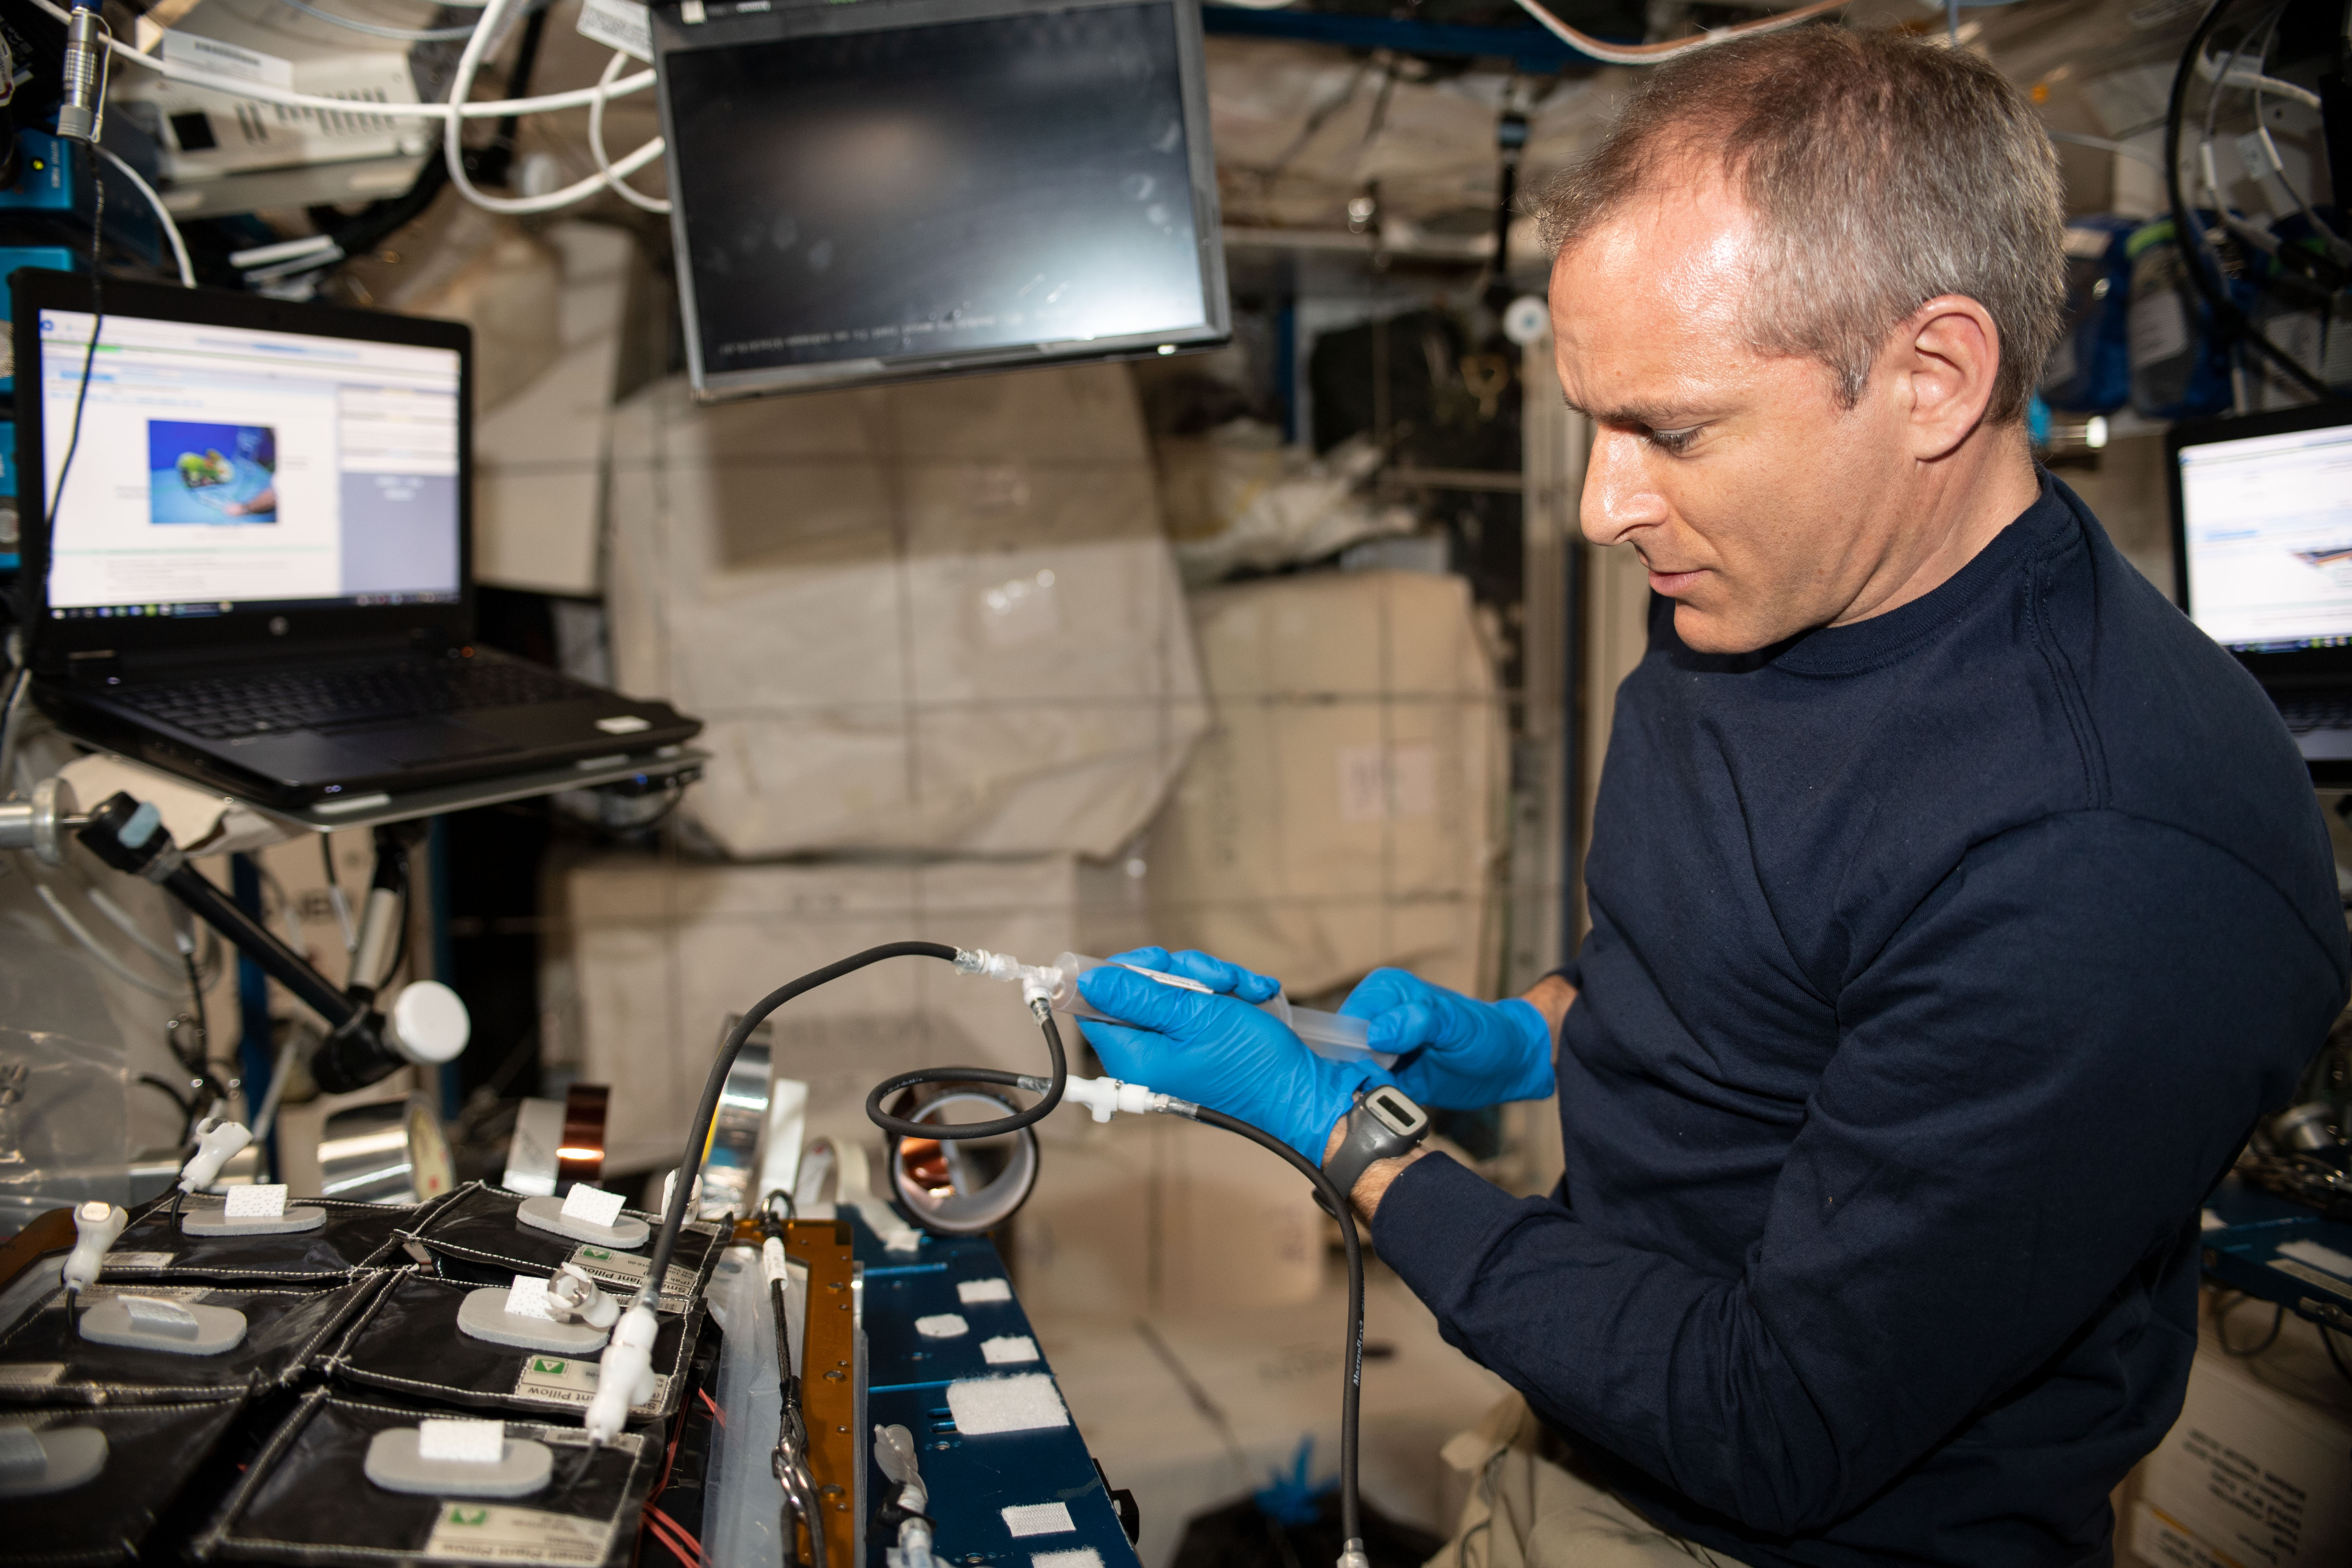 Canadian astronaut David Saint-Jacques began growing two new crops aboard the International Space Station on Saturday, March 9, 2019.